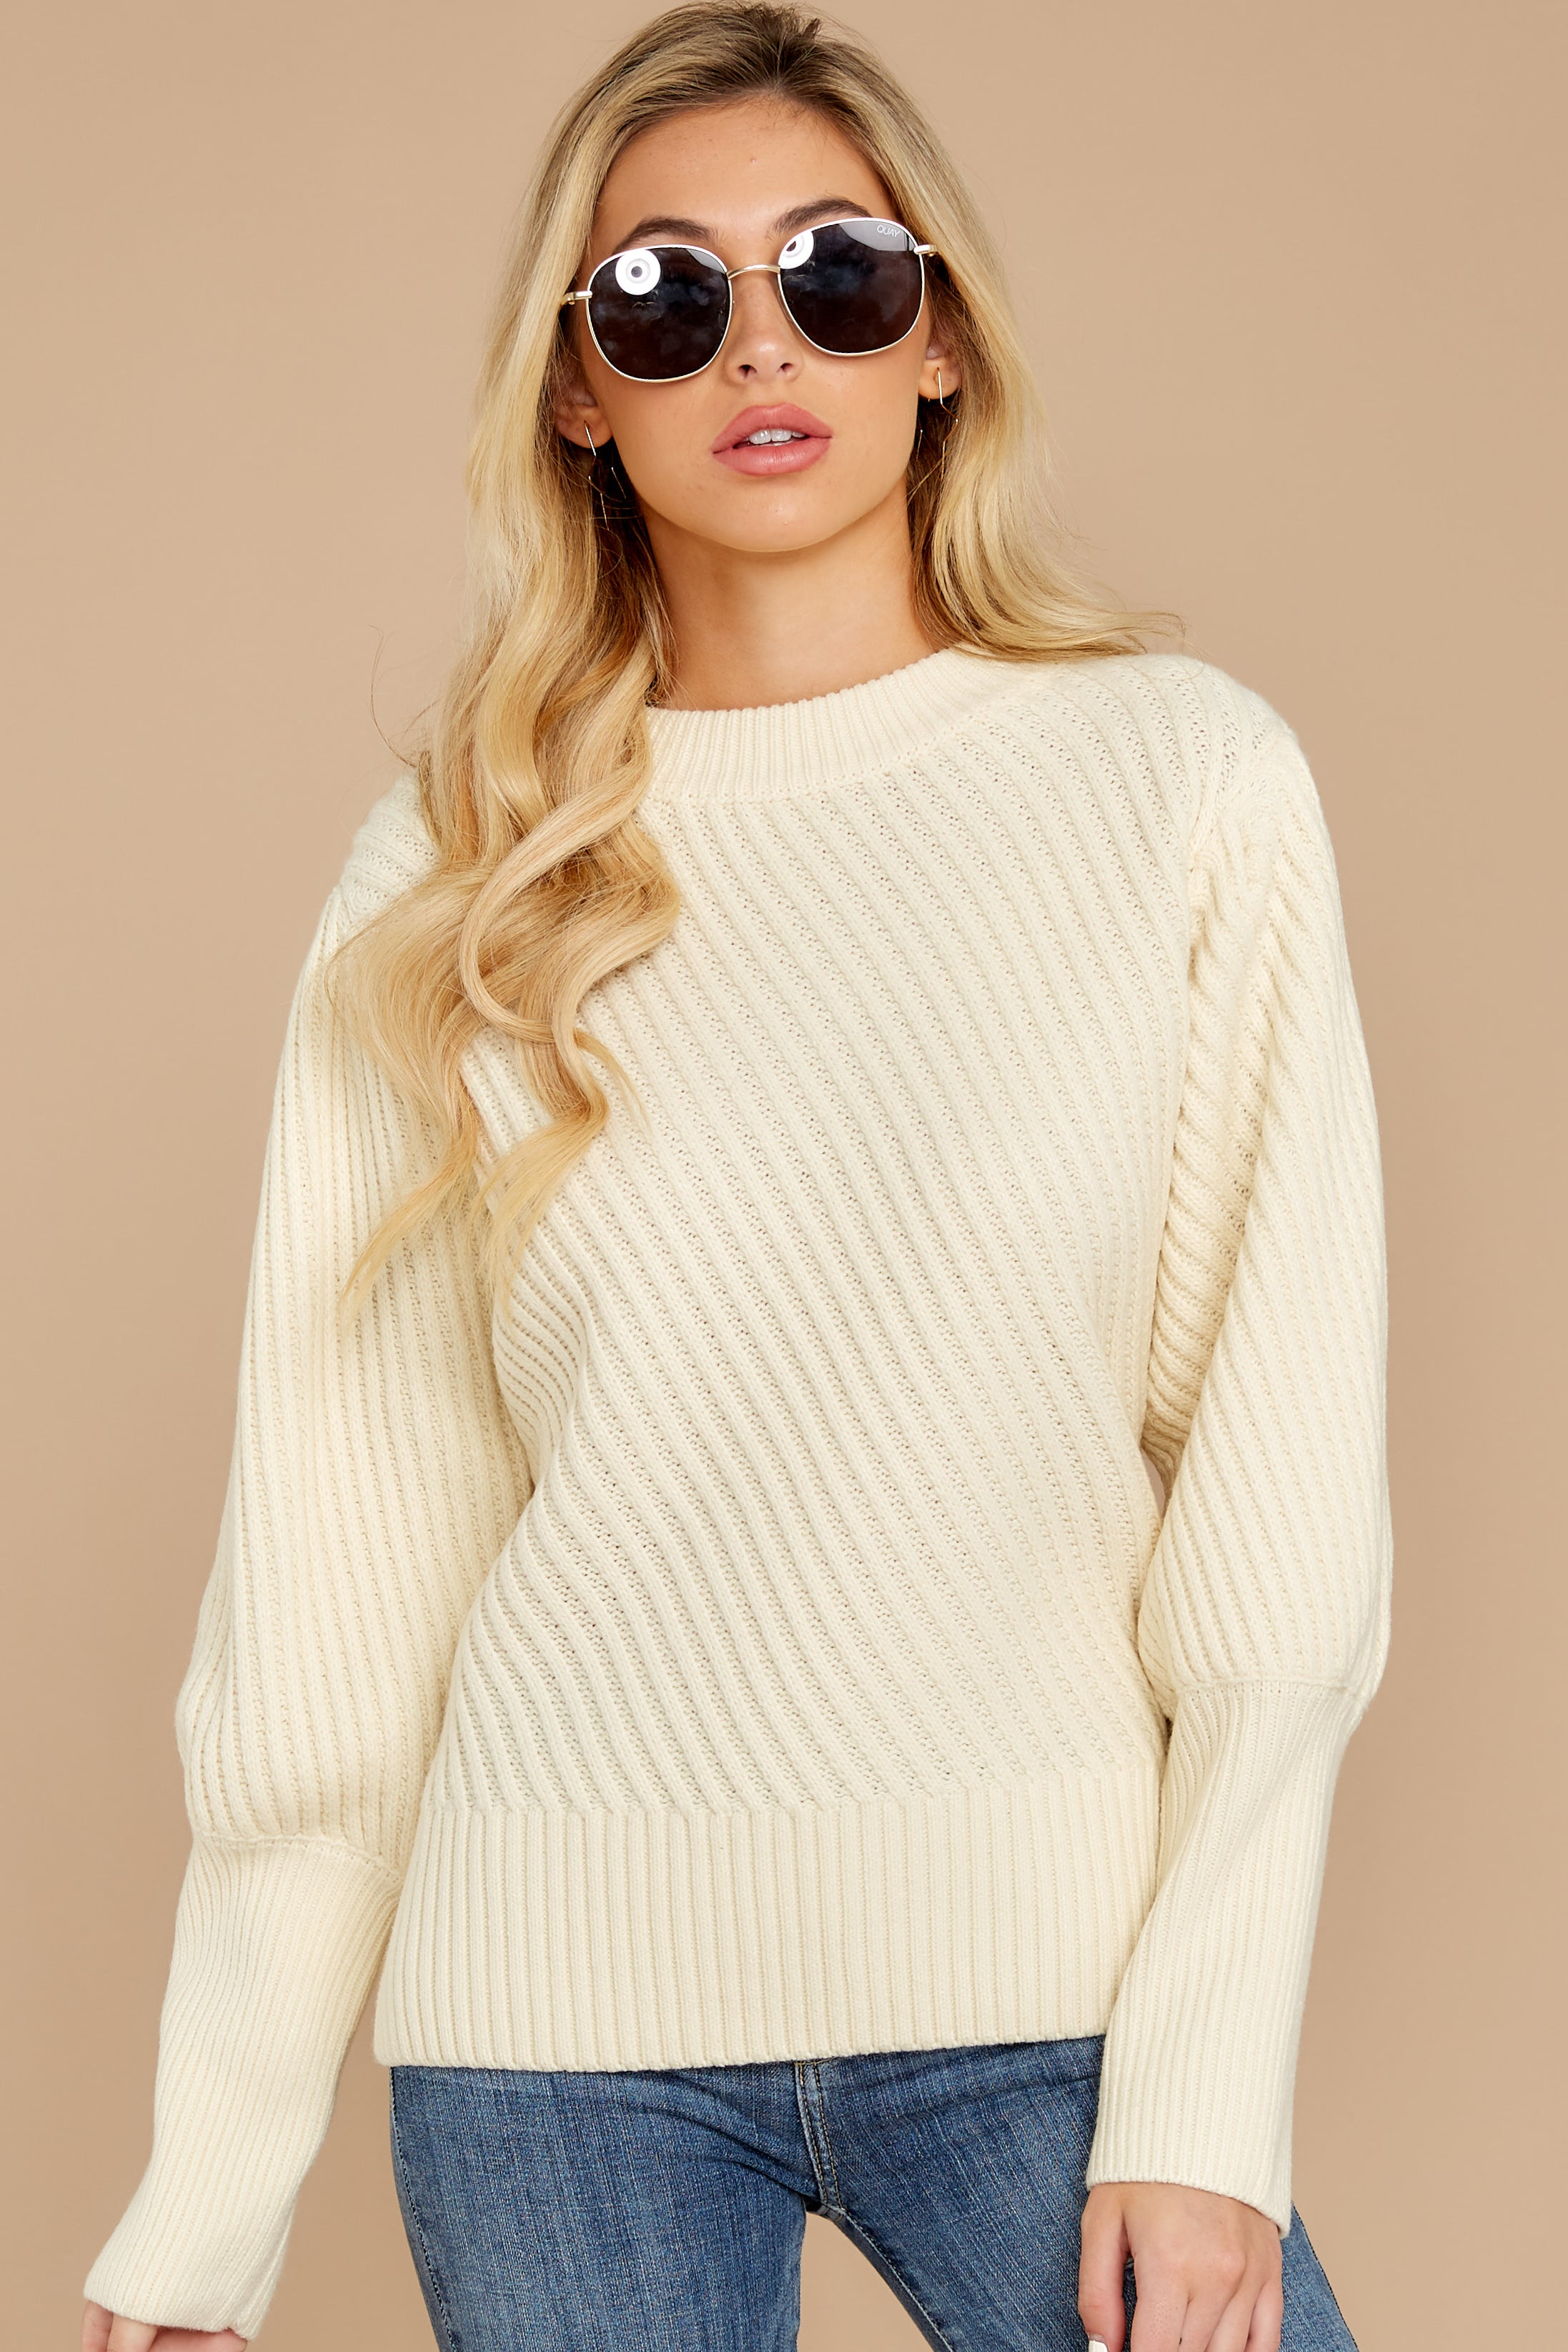 6 My Best Angle Ivory Sweater at reddressboutique.com